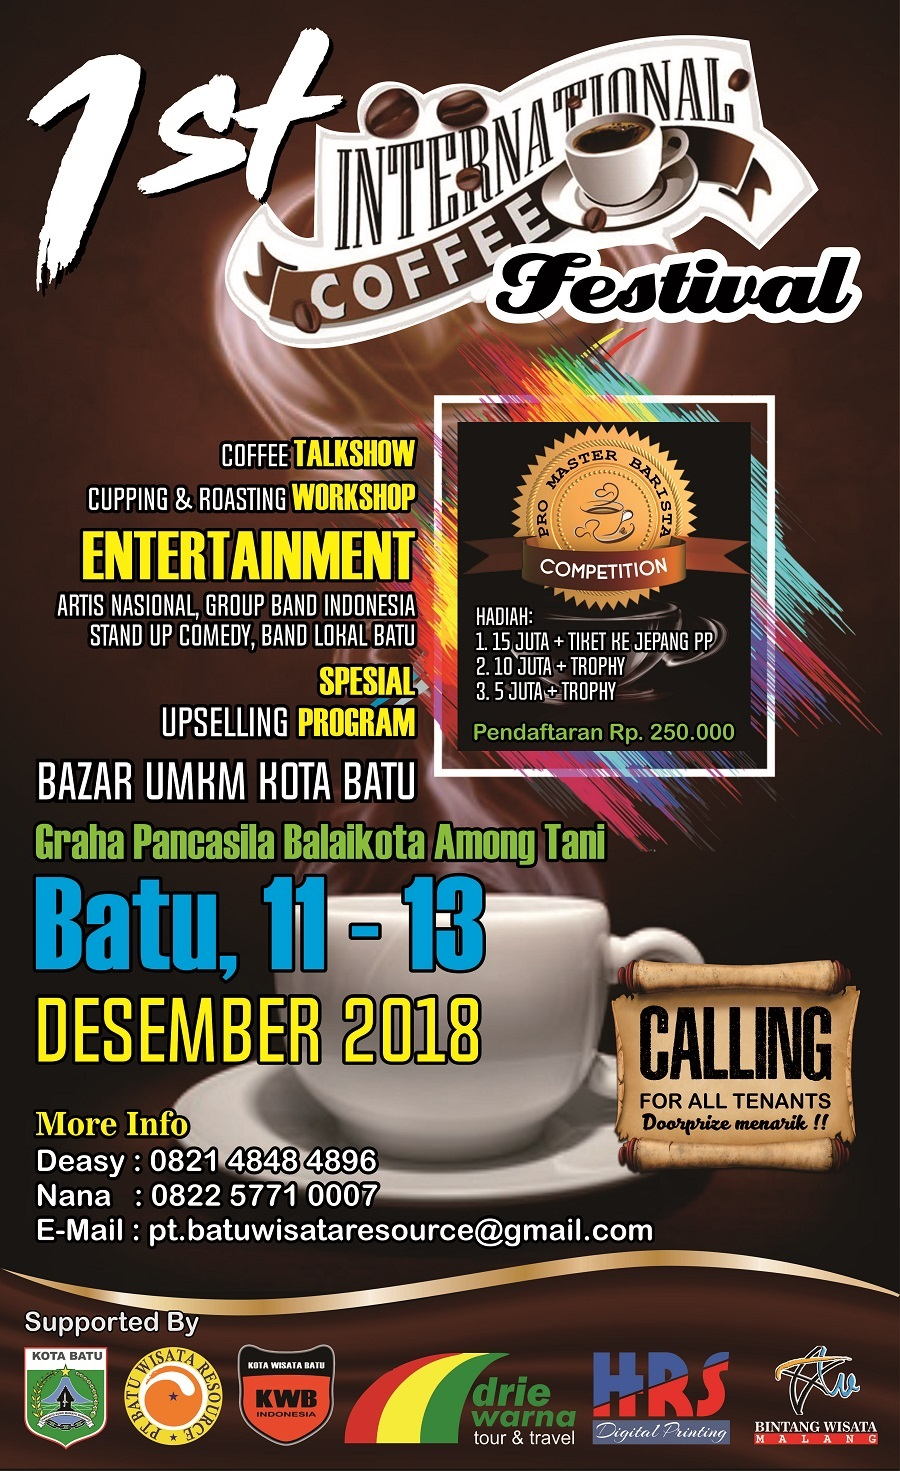 1st International Coffee Festival Batu 2018